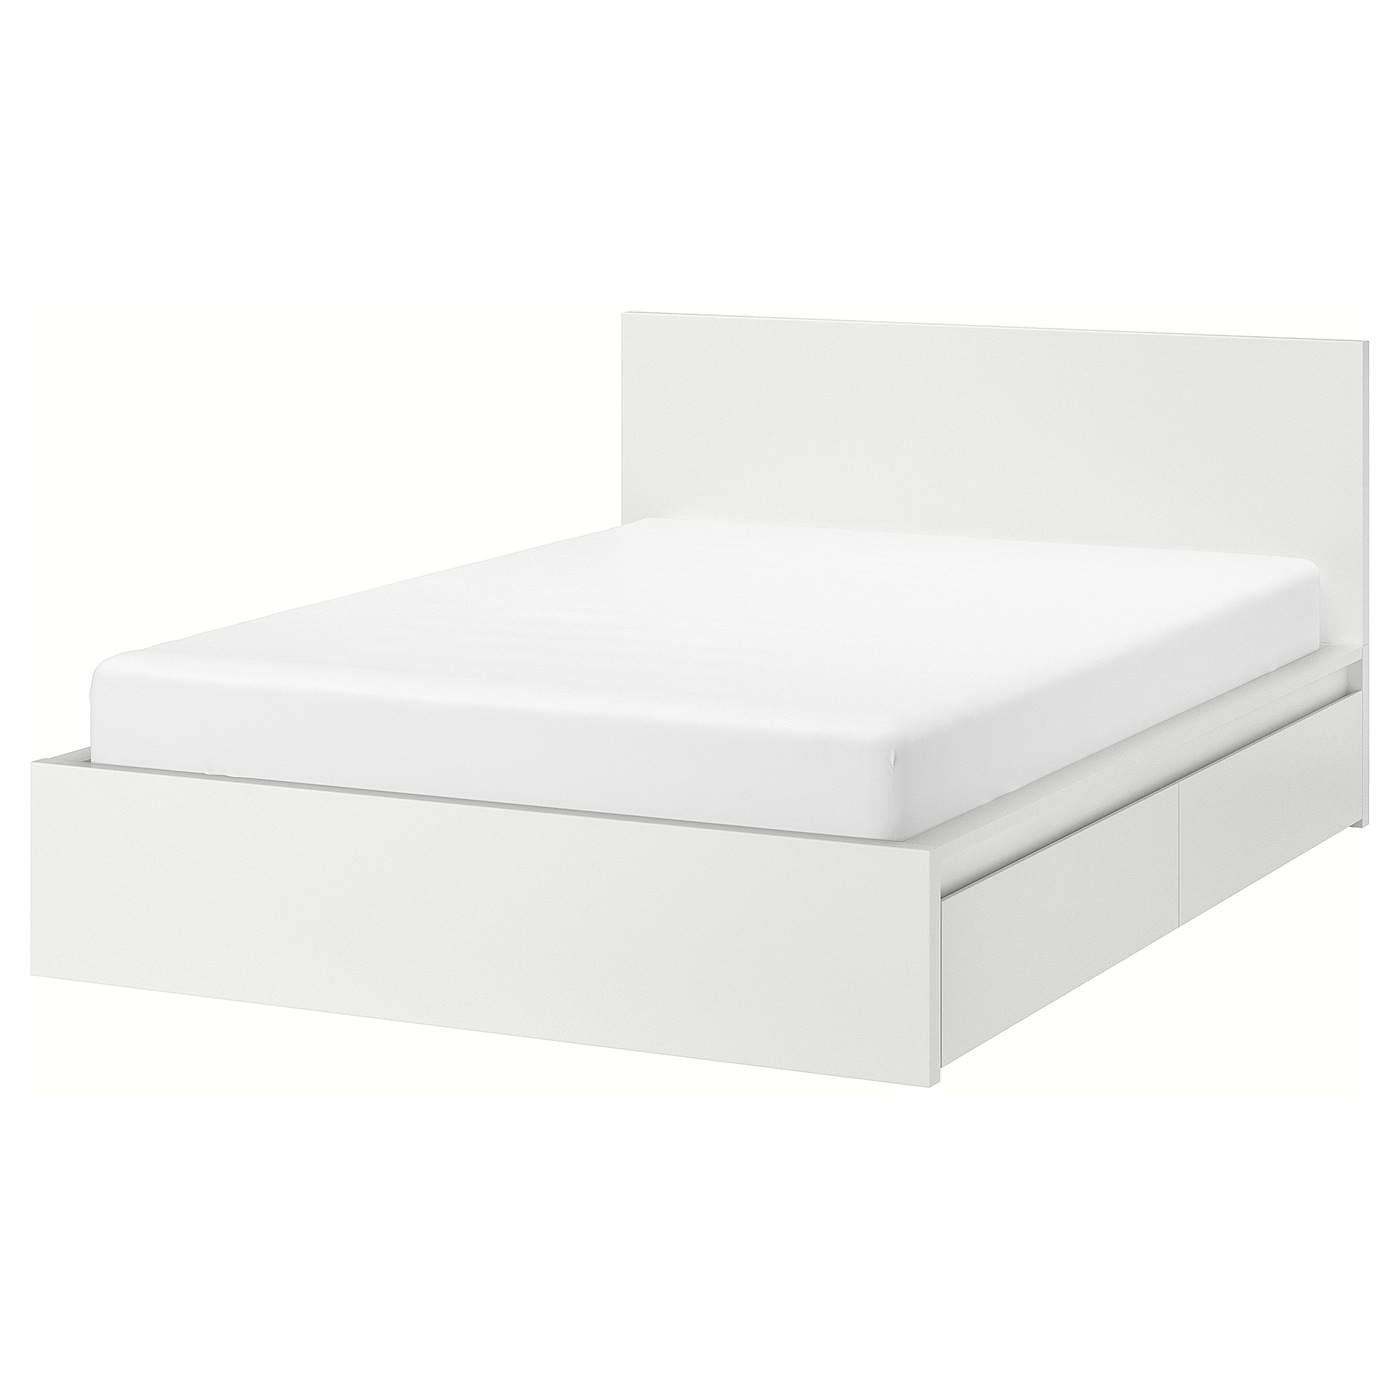 Malm Bed Frame High W 2 Storage Boxes White Ikea